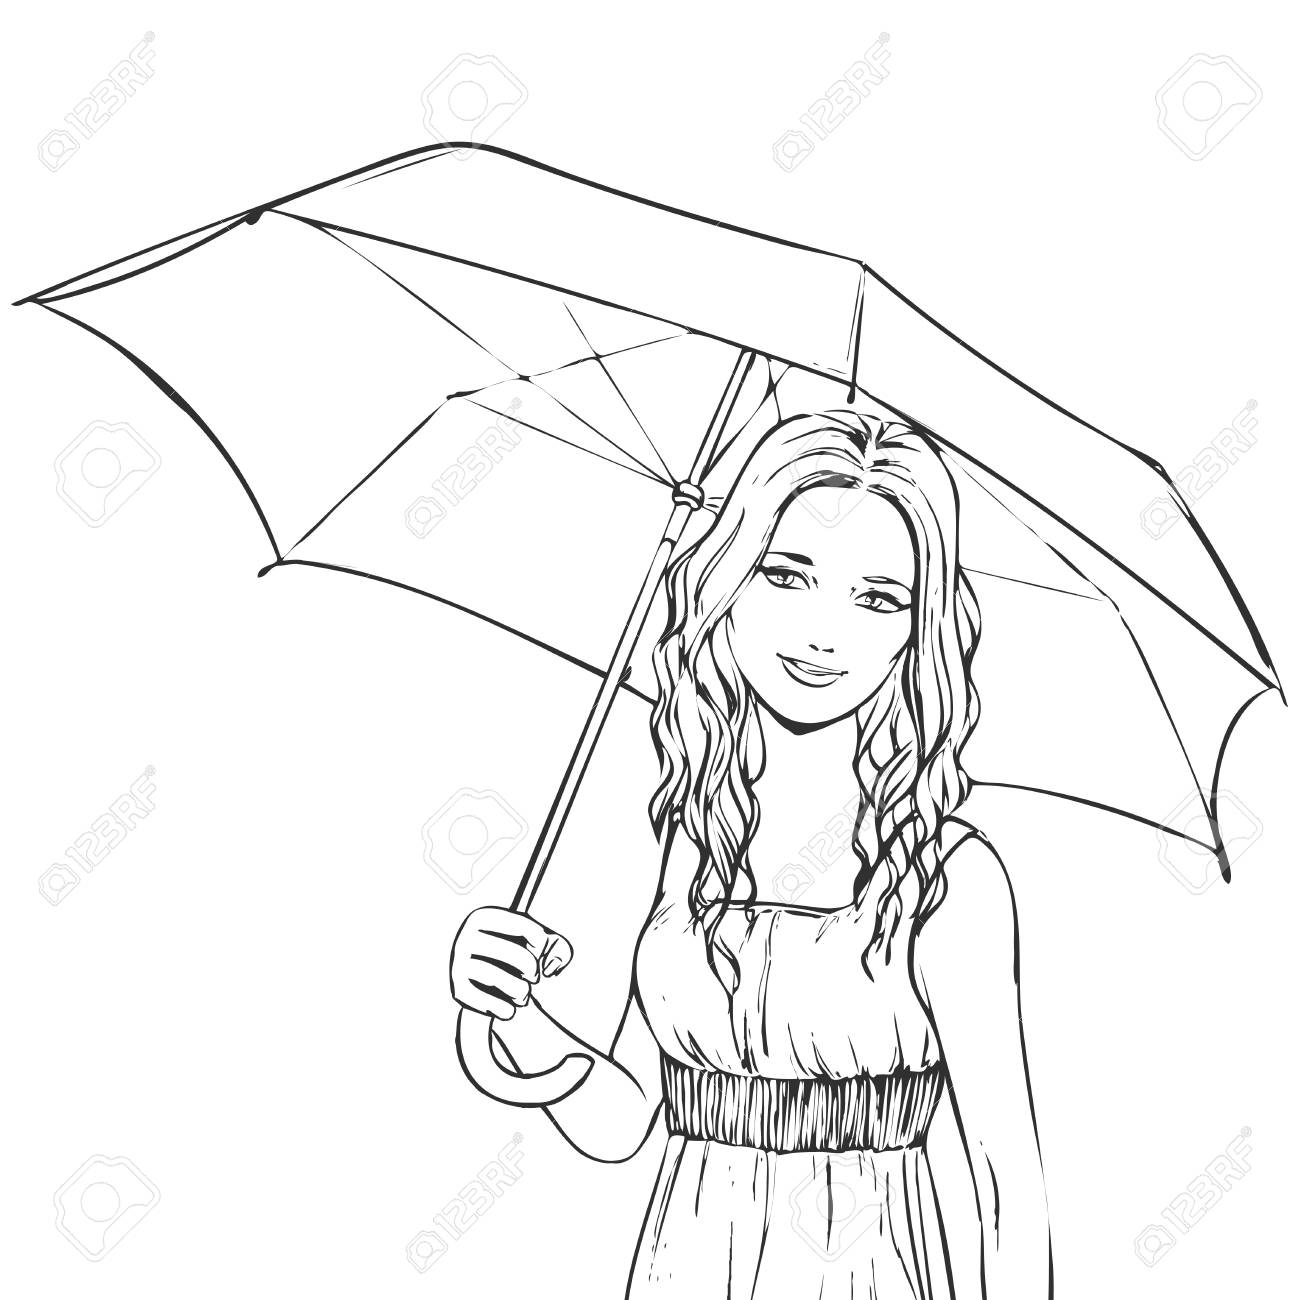 1297x1300 Summer Portrait Of Young Slim Beutiful Girl Under Umbrella